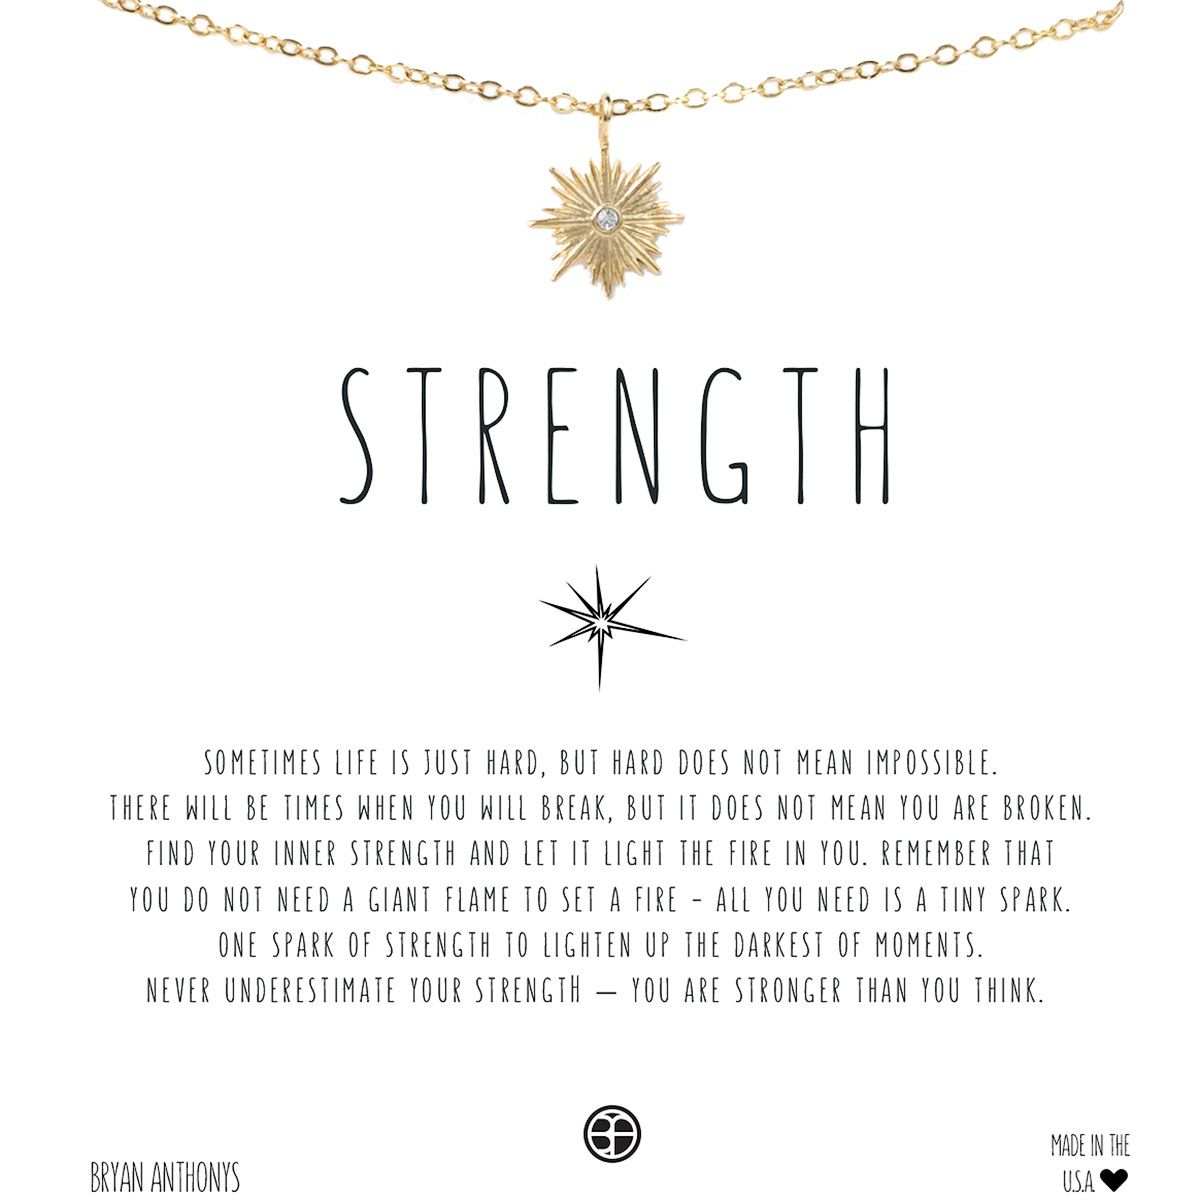 dbd7412c40eb STRENGTH. BRYAN ANTHONY NECKLACE. GOLD OR ROSE GOLD.